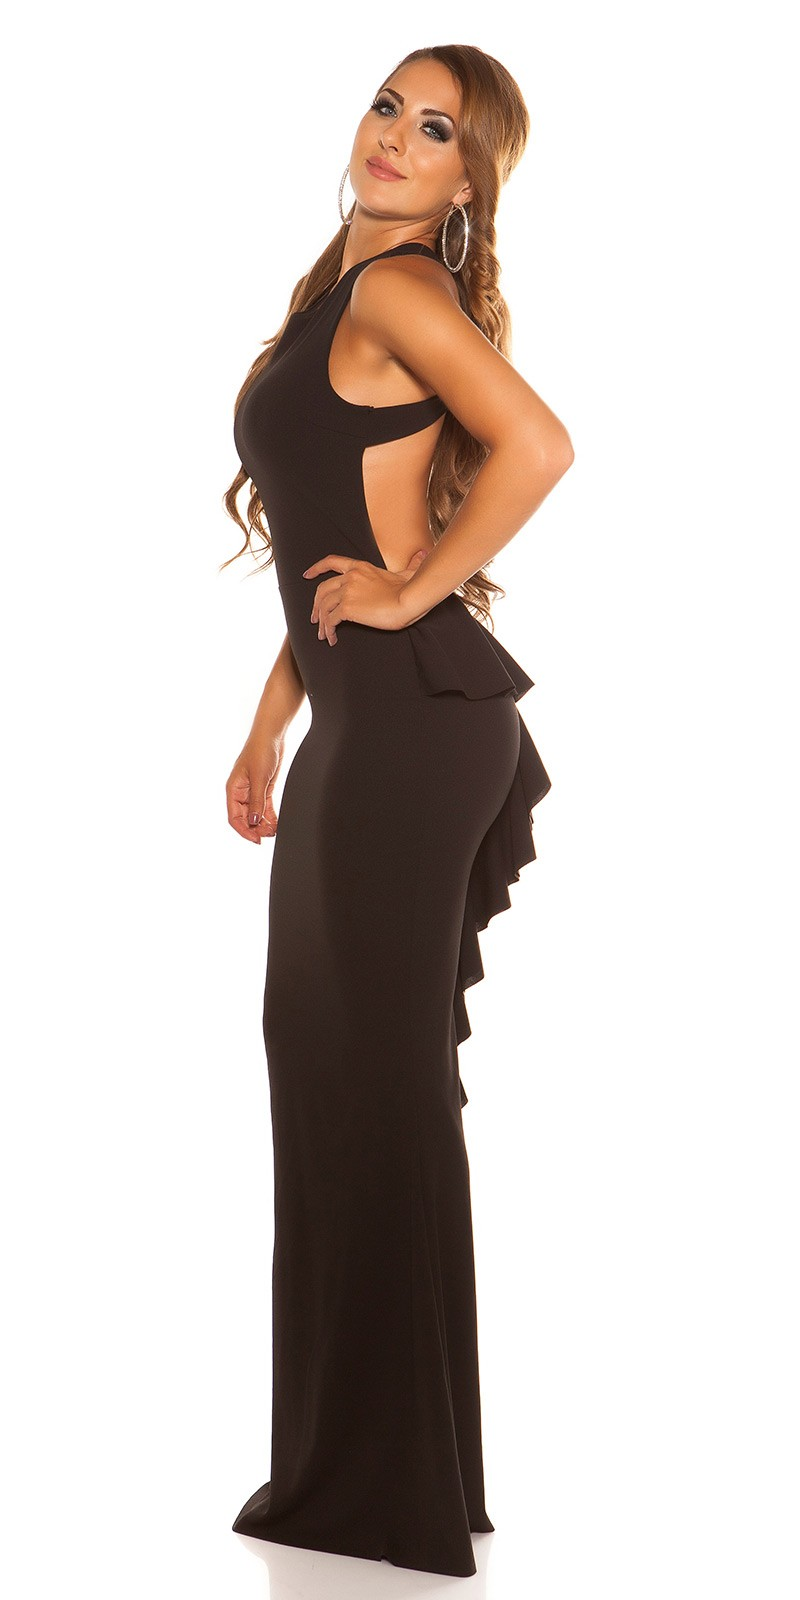 a5317d4760d4 eeSexy evening gown backless  Color BLACK Size Einheitsgroesse 0000V2830 SCHWARZ 31